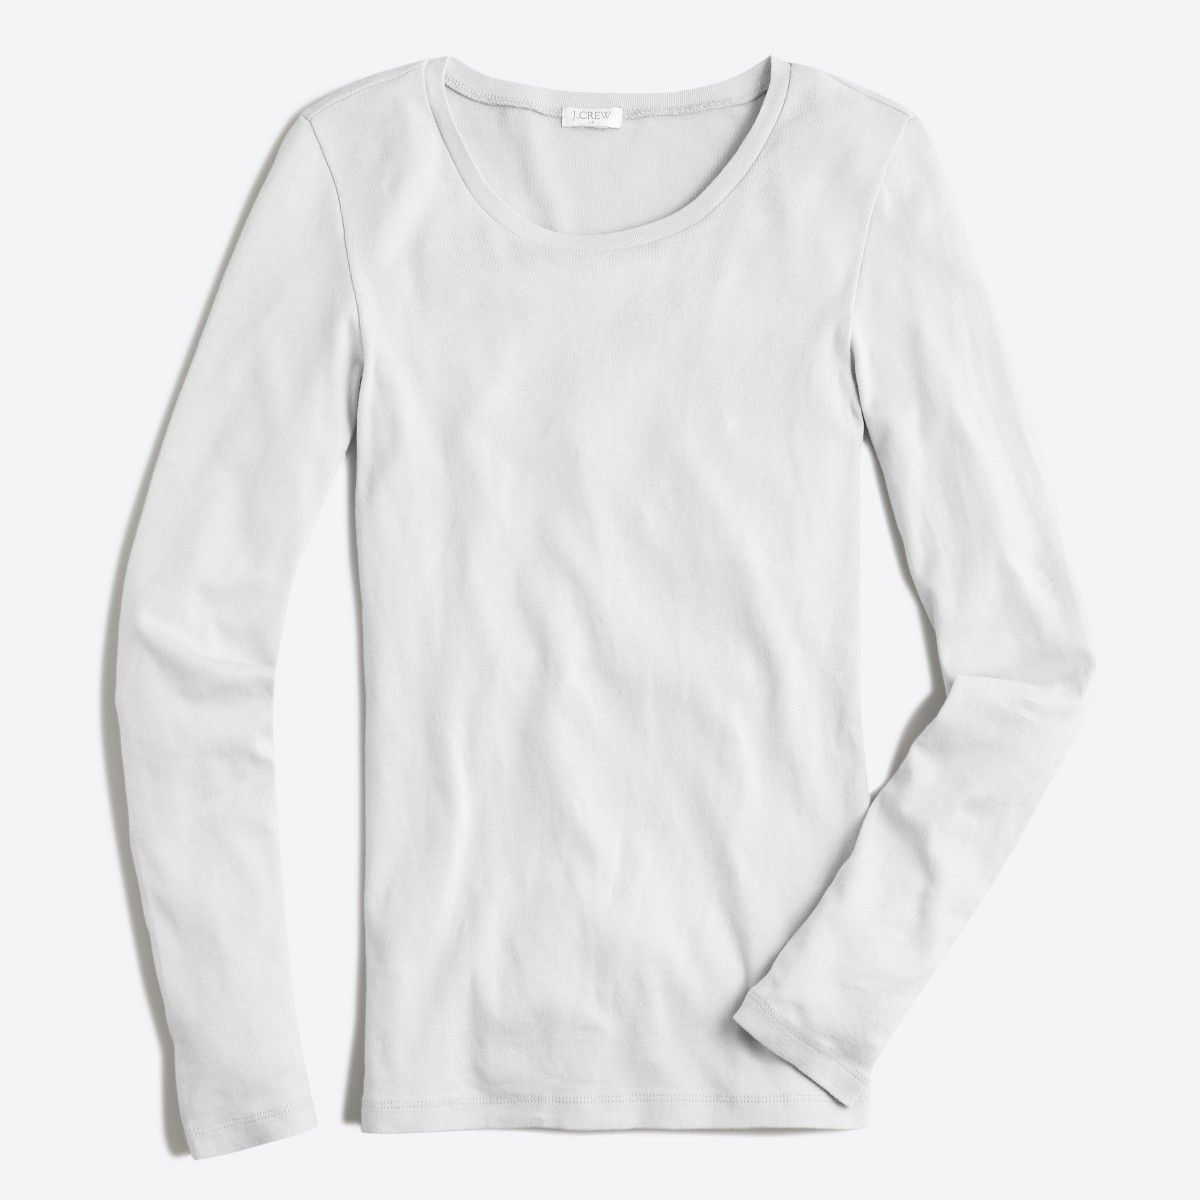 ea01e8cd489a Shop the Fine-Rib Cotton Long-Sleeve T-Shirt at J.Crew Factory and find  everyday deals on Women's Tees.